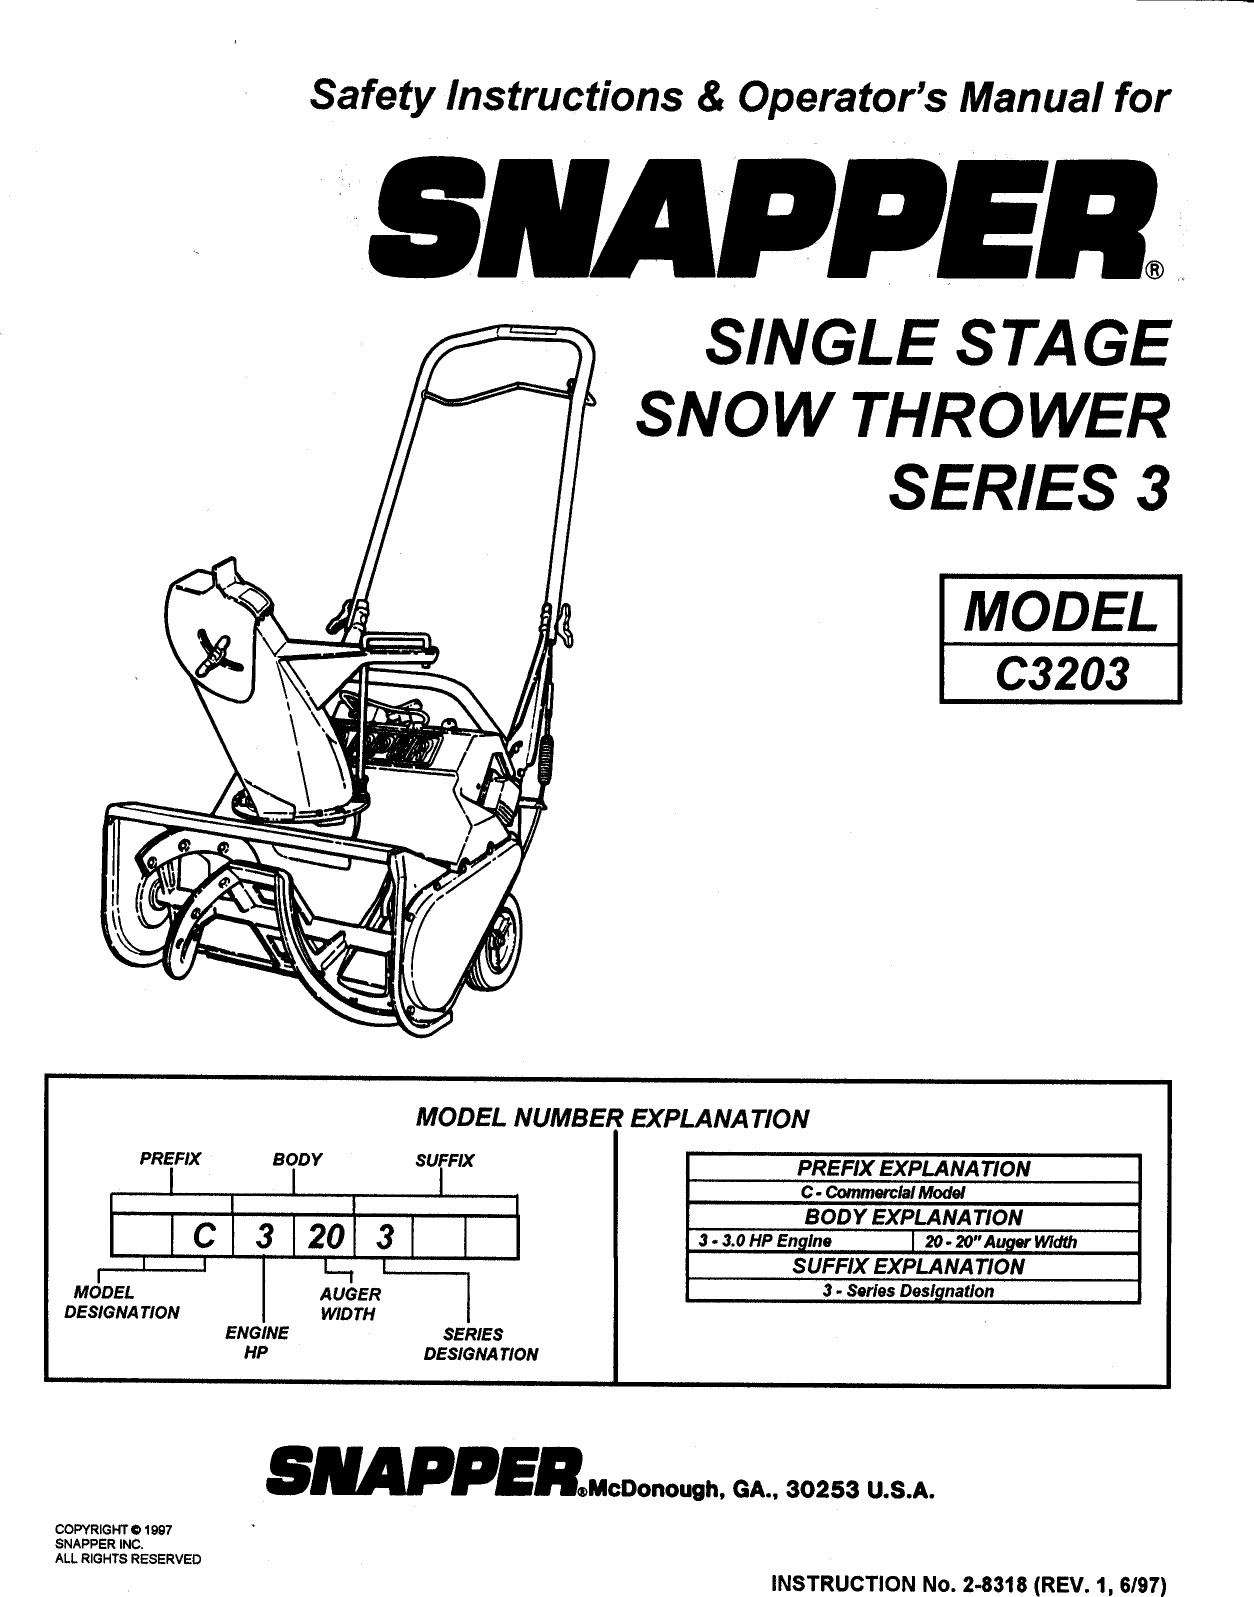 Snapper C3203 User Manual SNOW THROWER Manuals And Guides